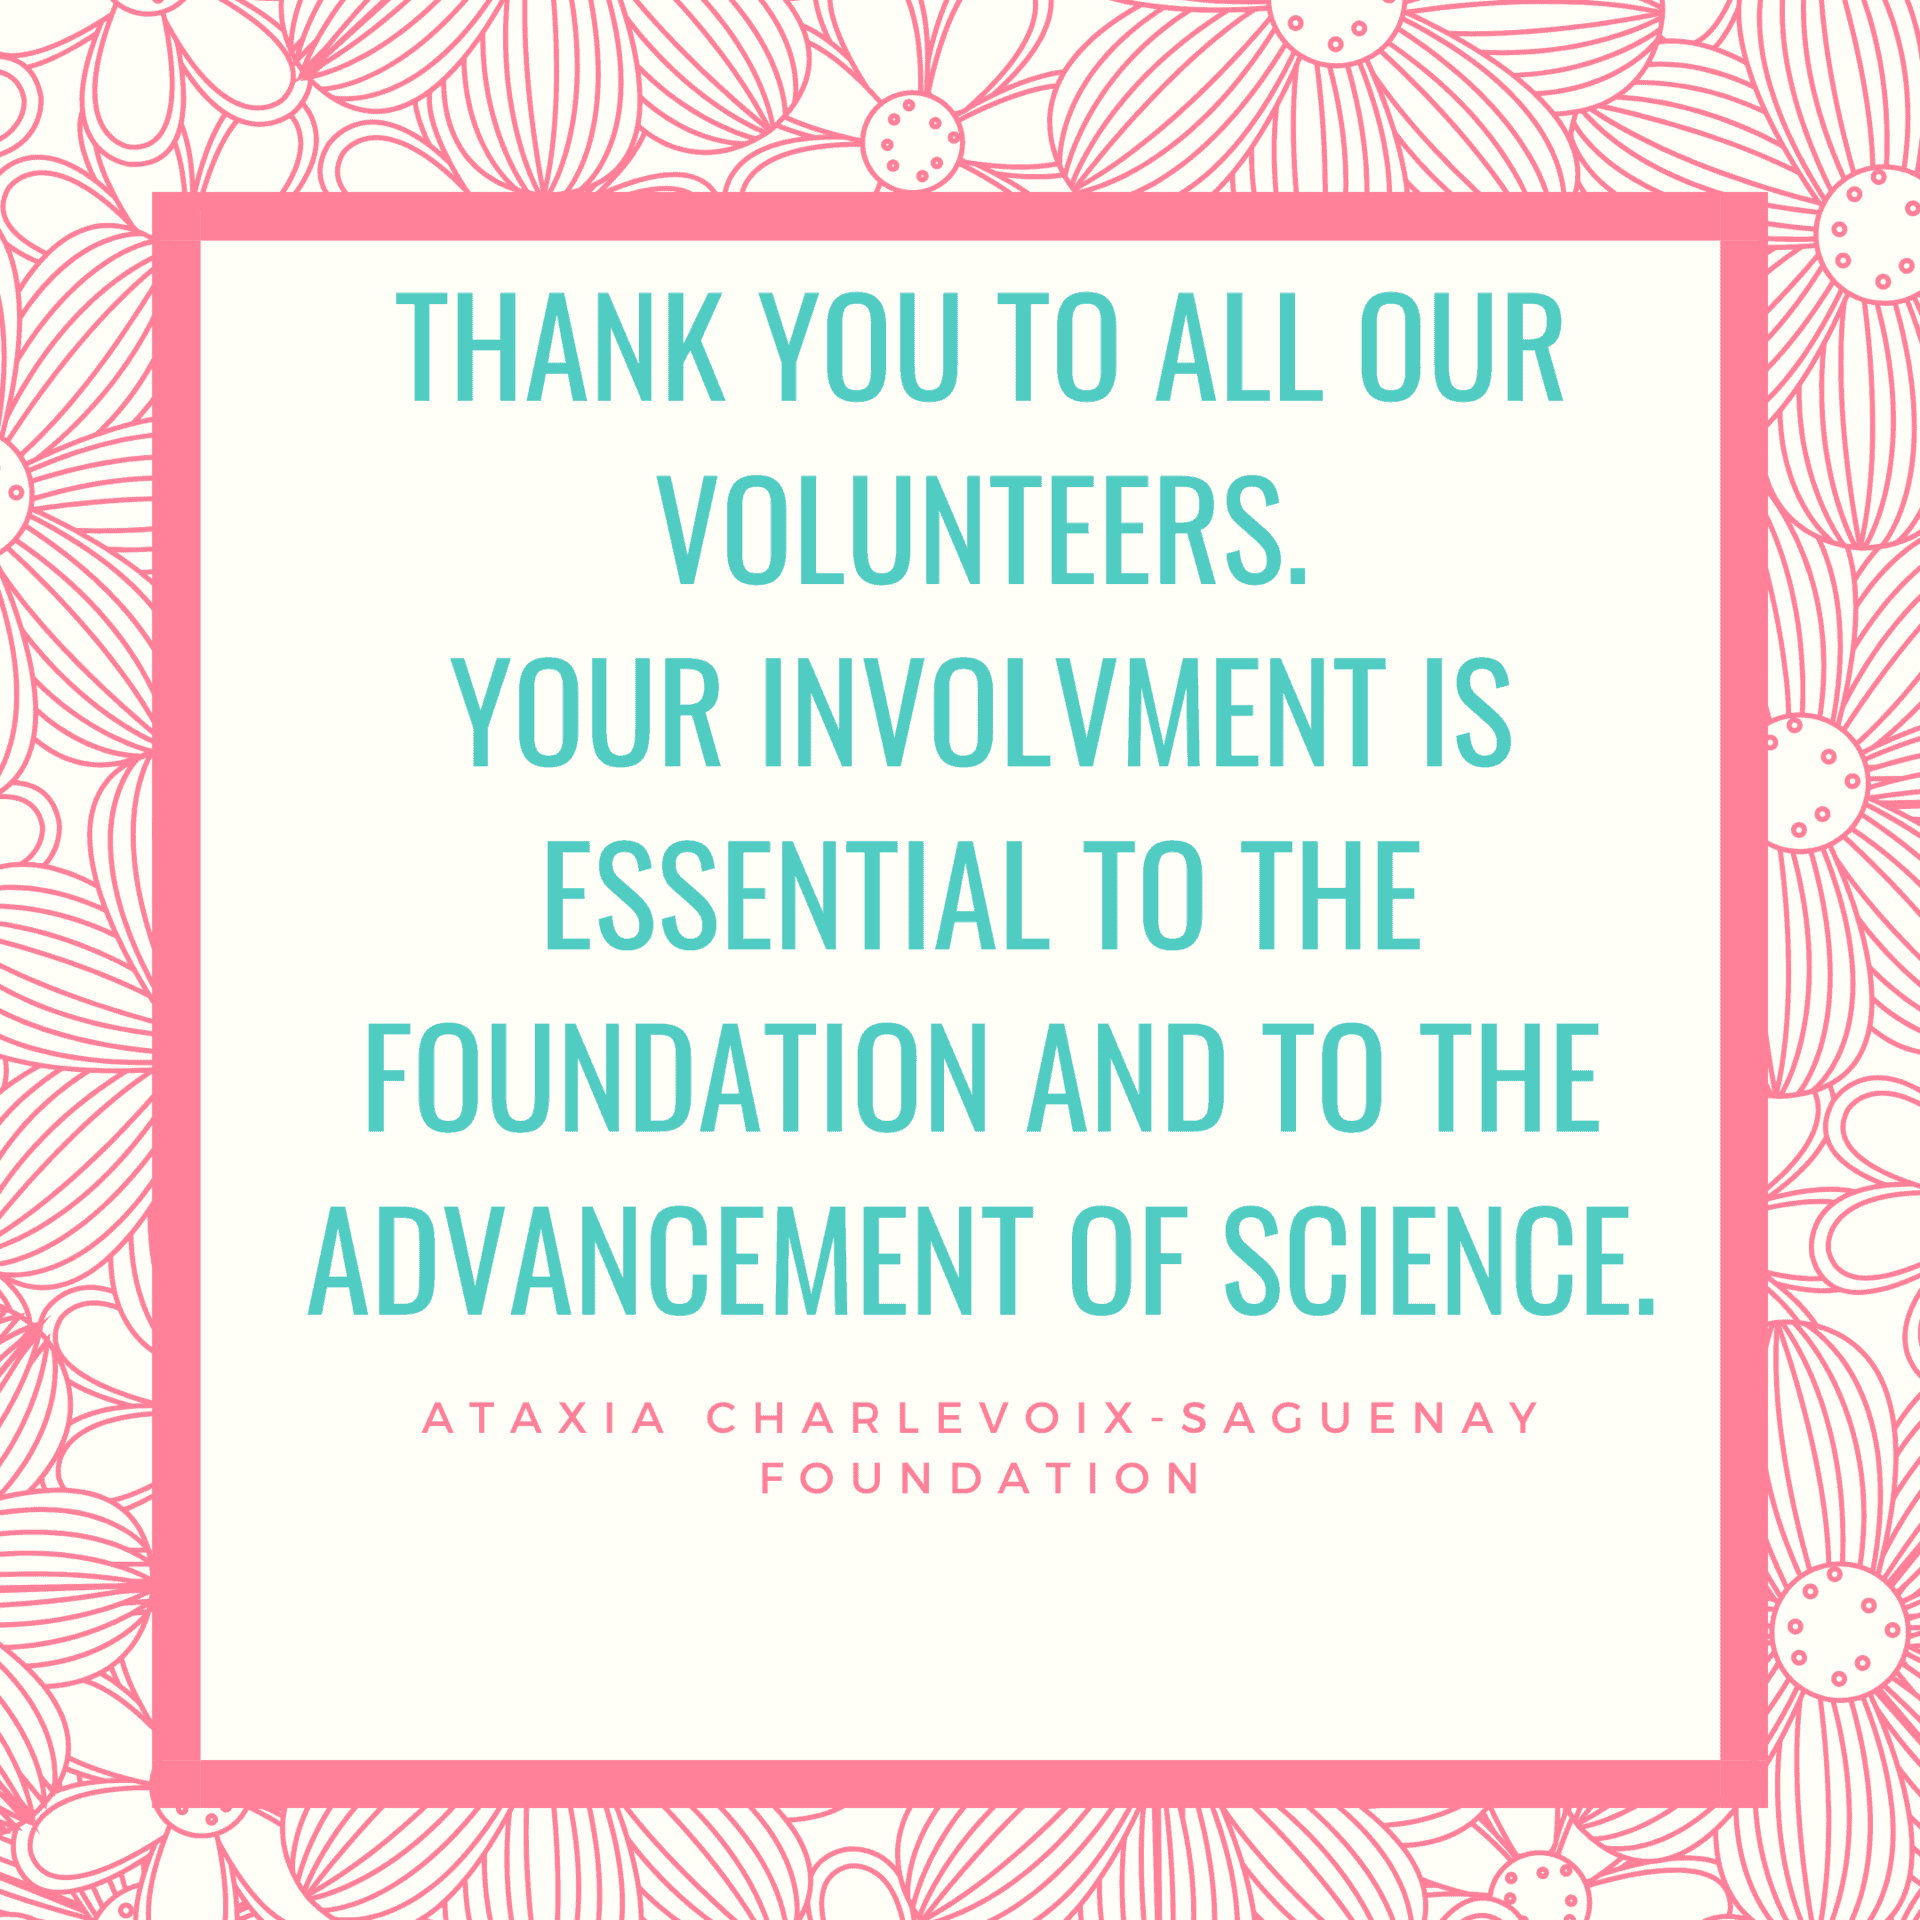 Thank you to all our Volunteers. Your involvement is essential to the Foundation and the advancement of science. Ataxia Charlevoix-Saguenay Foundation